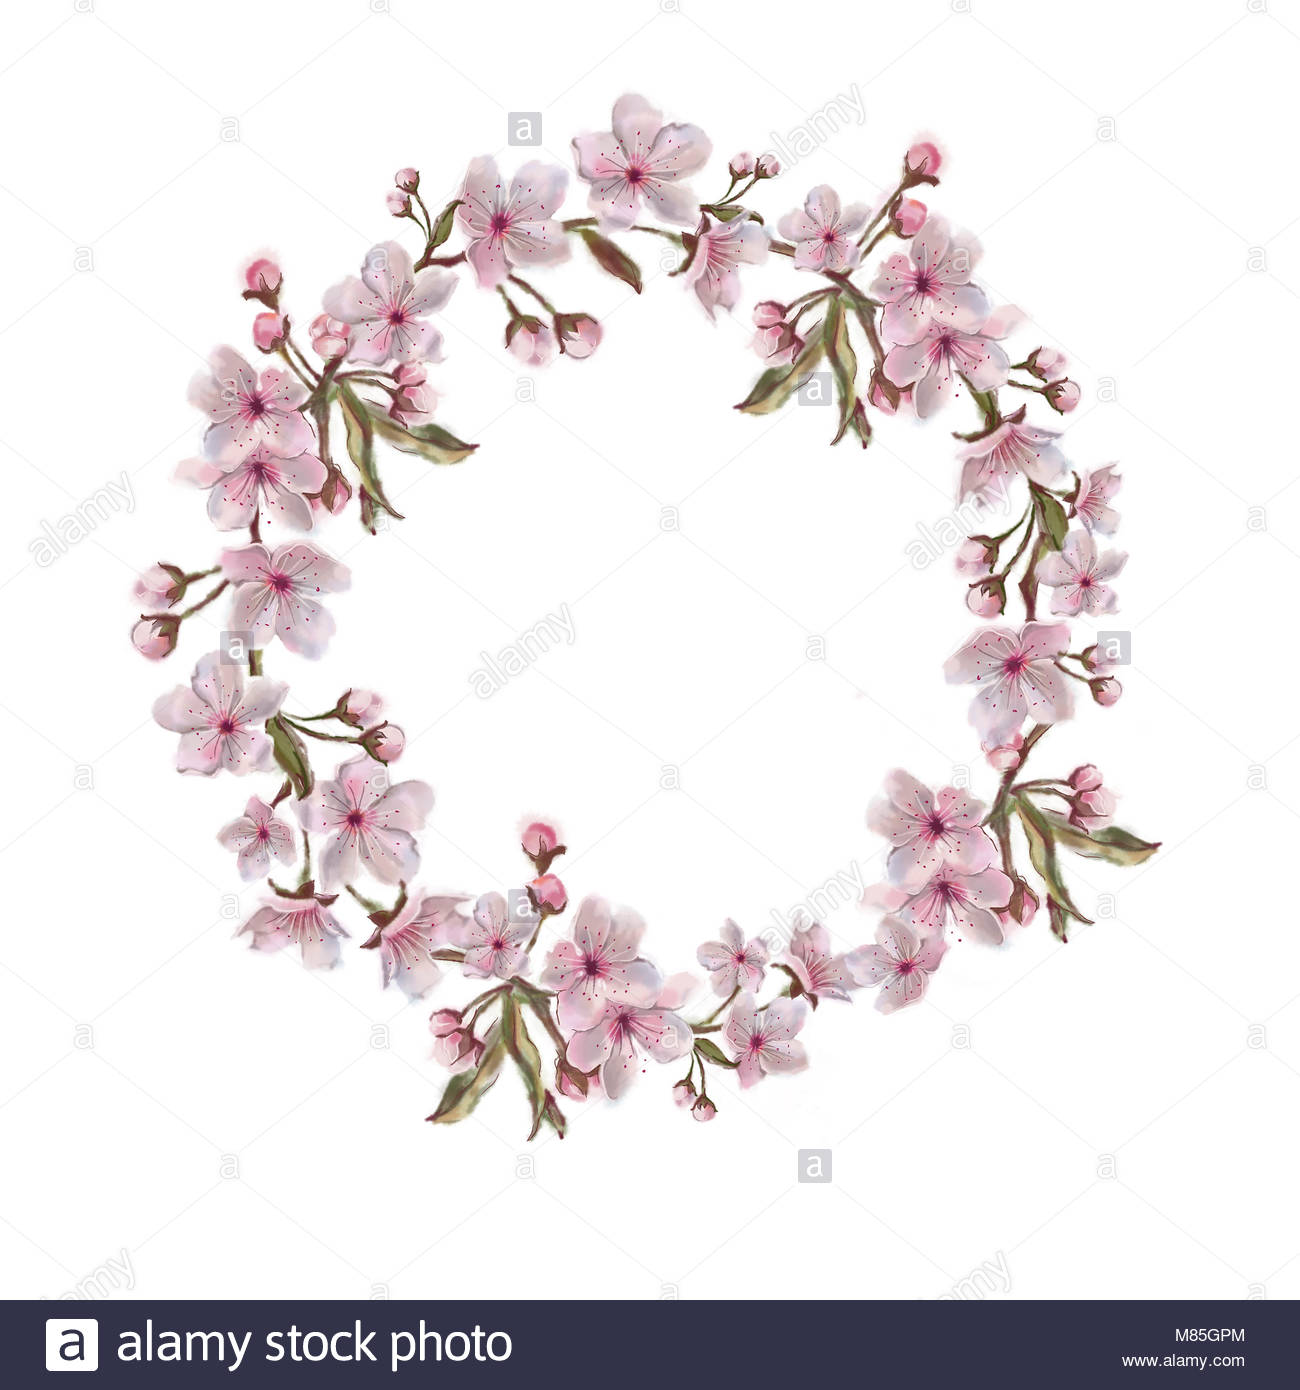 Floral Wreath Isolated on White Background Spring Flowers Hand 1300x1390